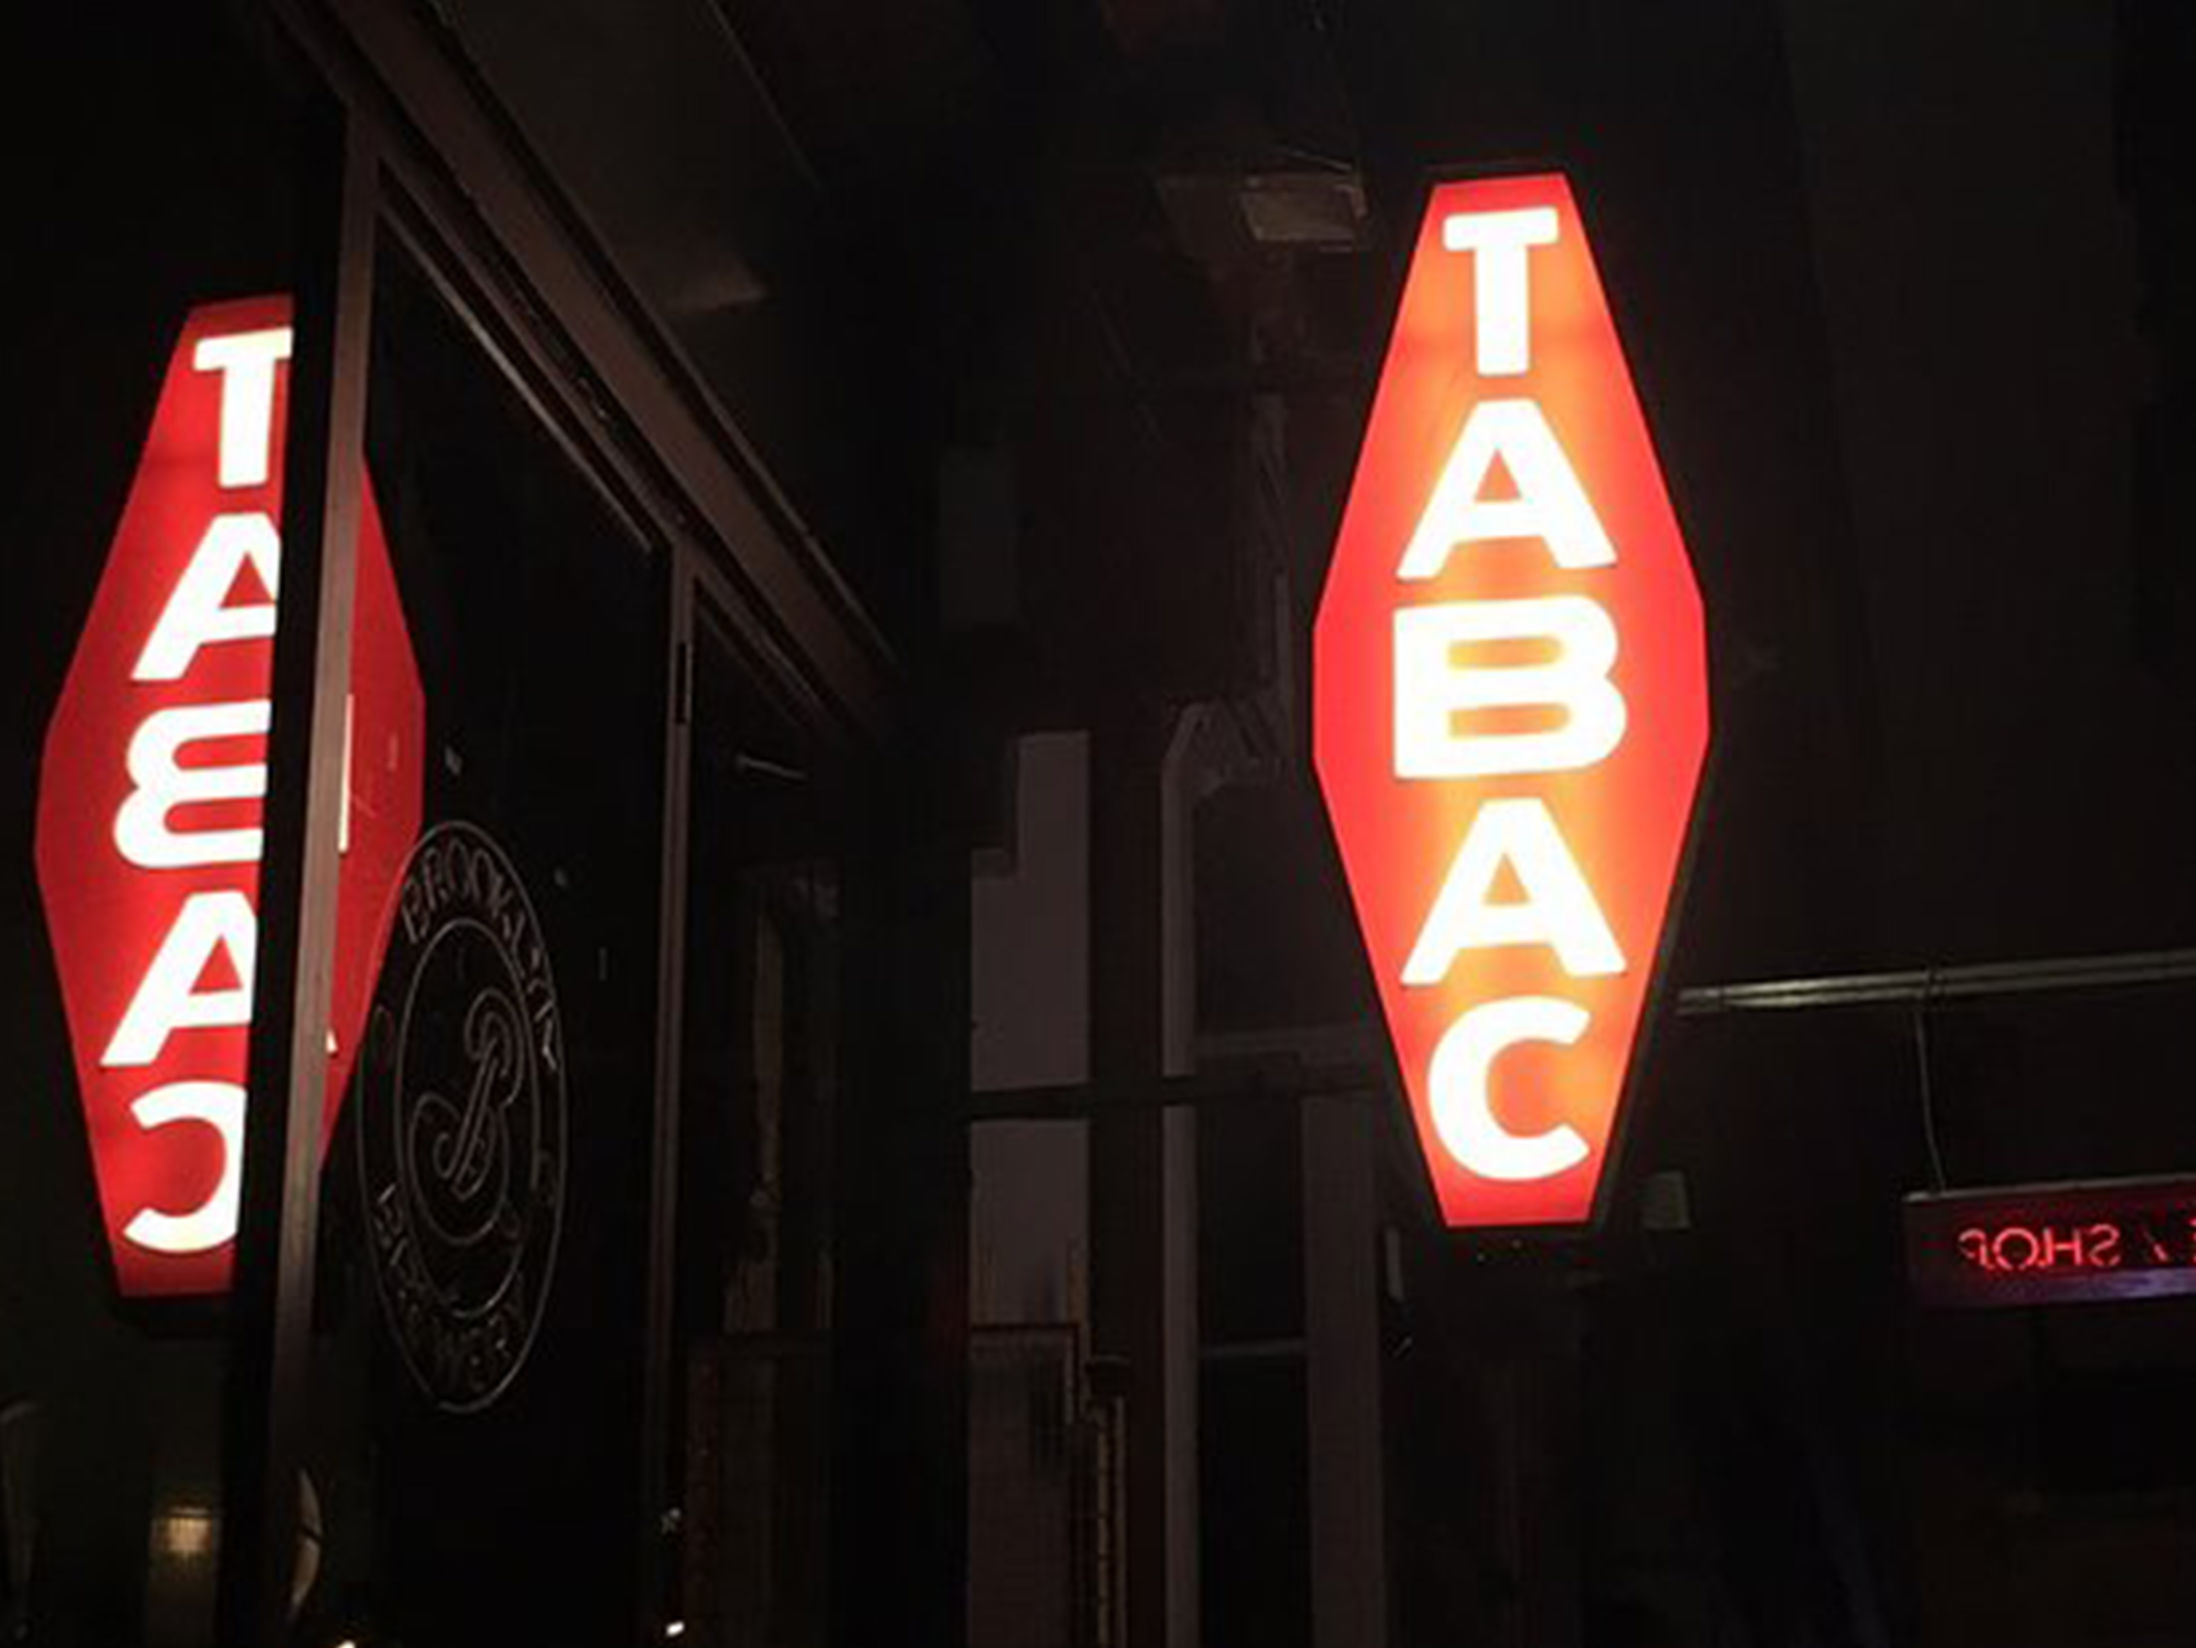 Best Pubs in Glasgow - Tabac